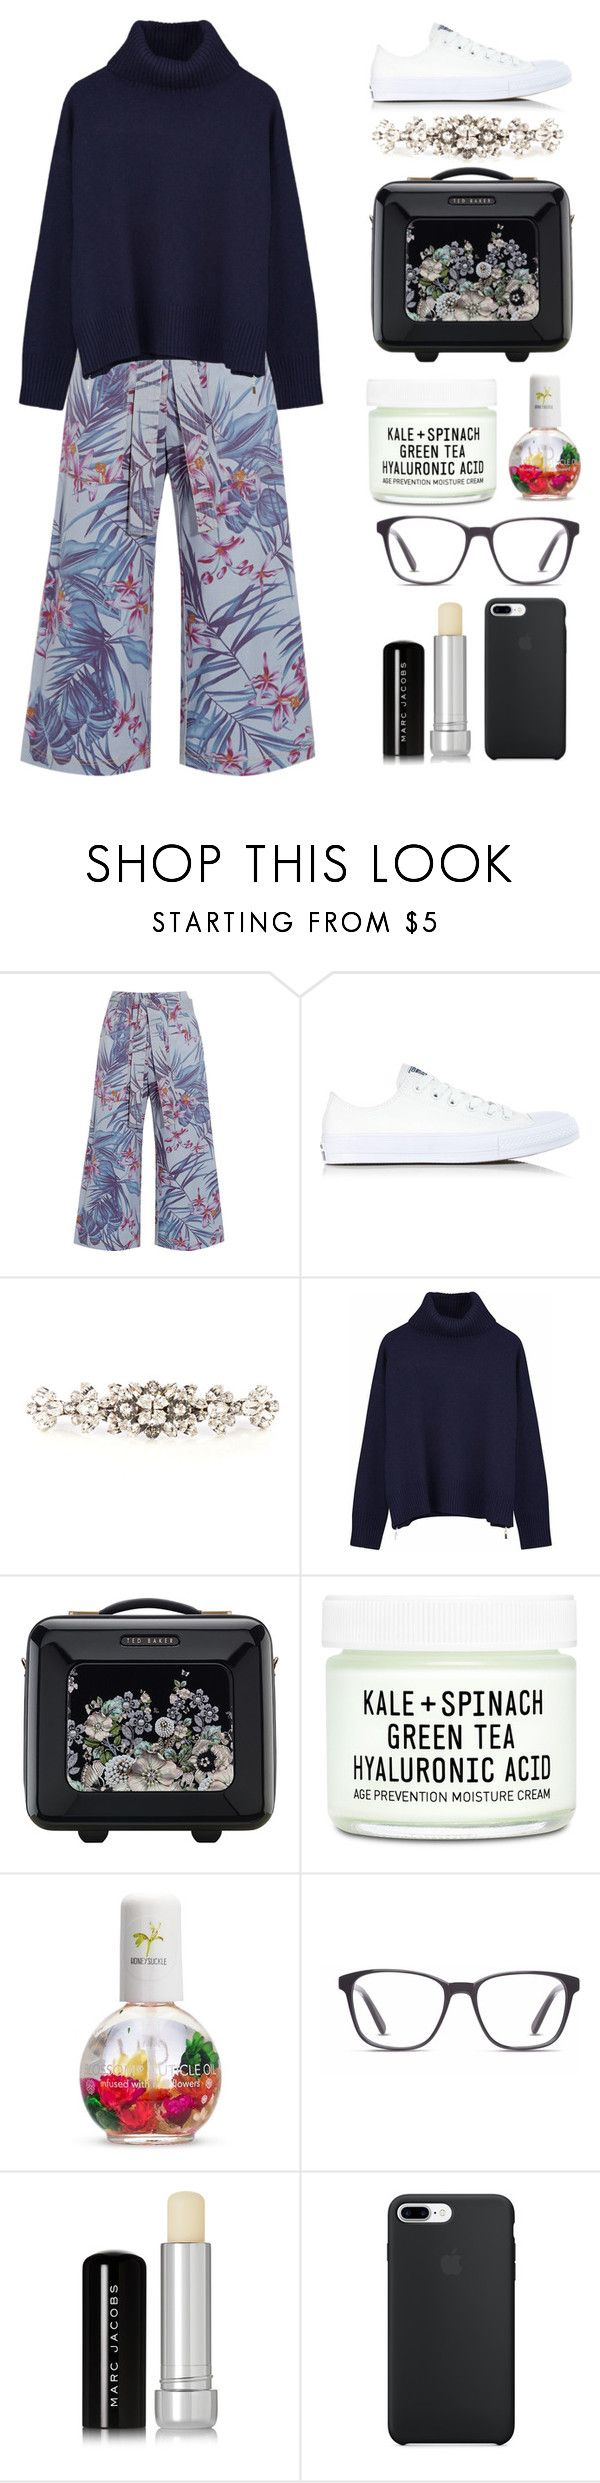 """5.762"" by katrinattack ❤ liked on Polyvore featuring SUNO New York, Converse, Dolce&Gabbana, Ille De Cocos, Ted Baker, Youth To The People, Forever 21, Finlay & Co. and Marc Jacobs"